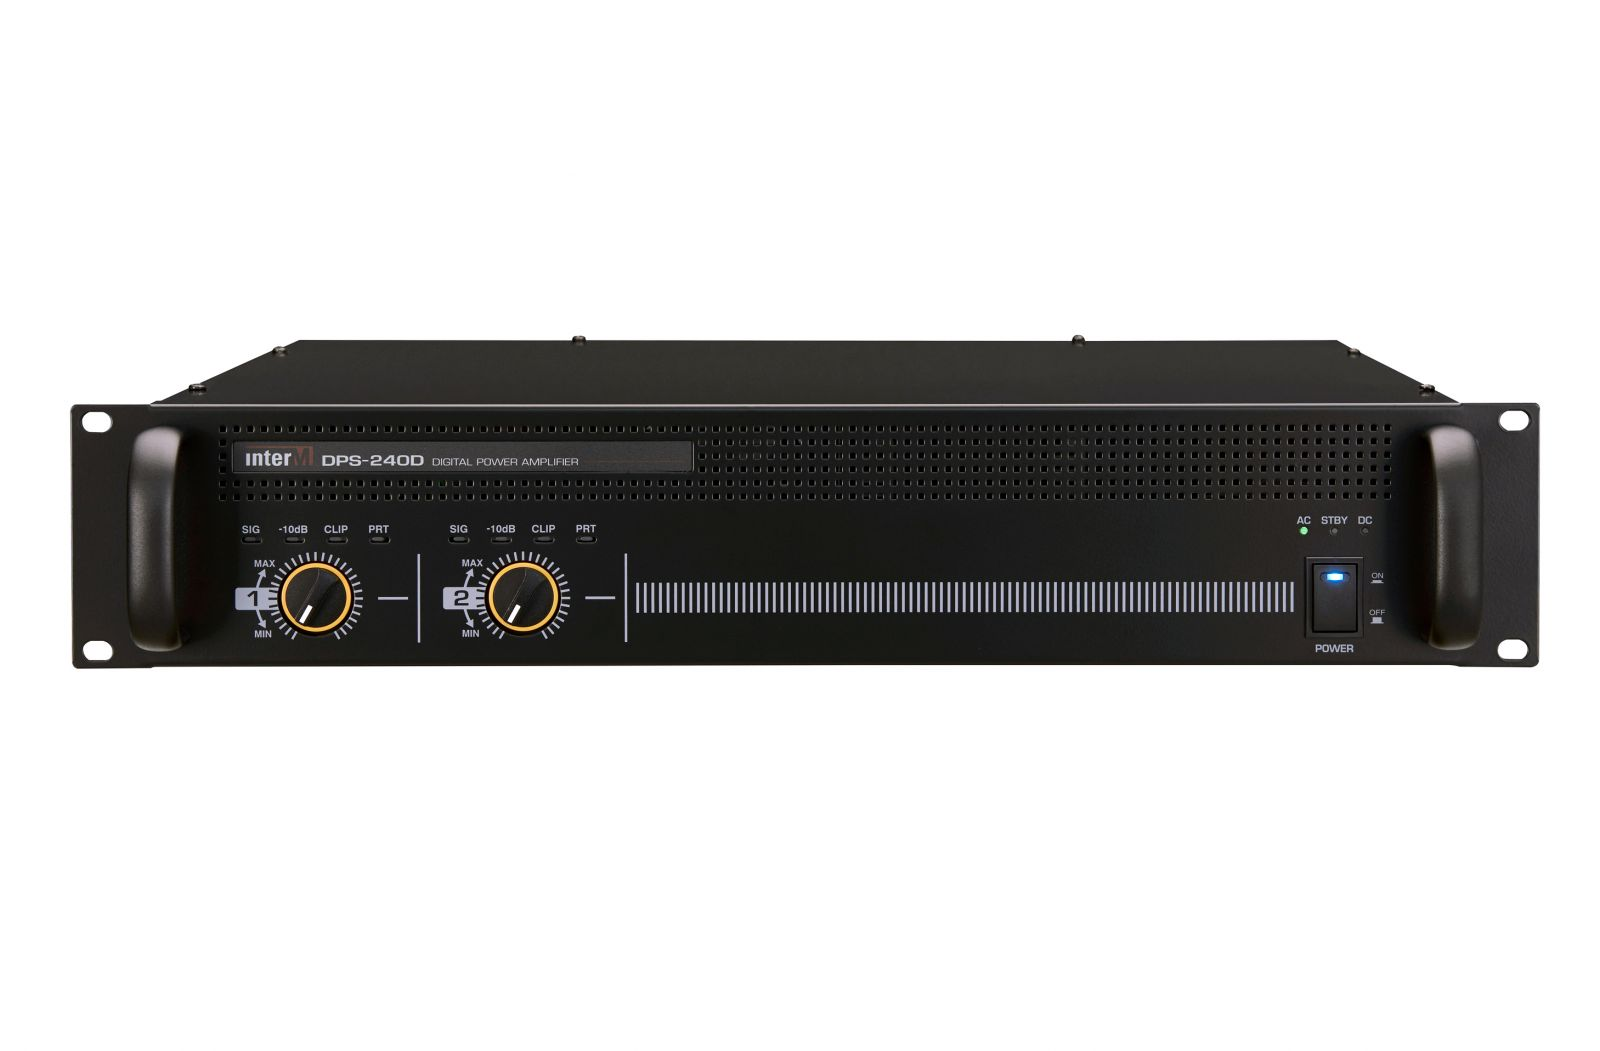 Amply 240Wx2CH - DPS-240D